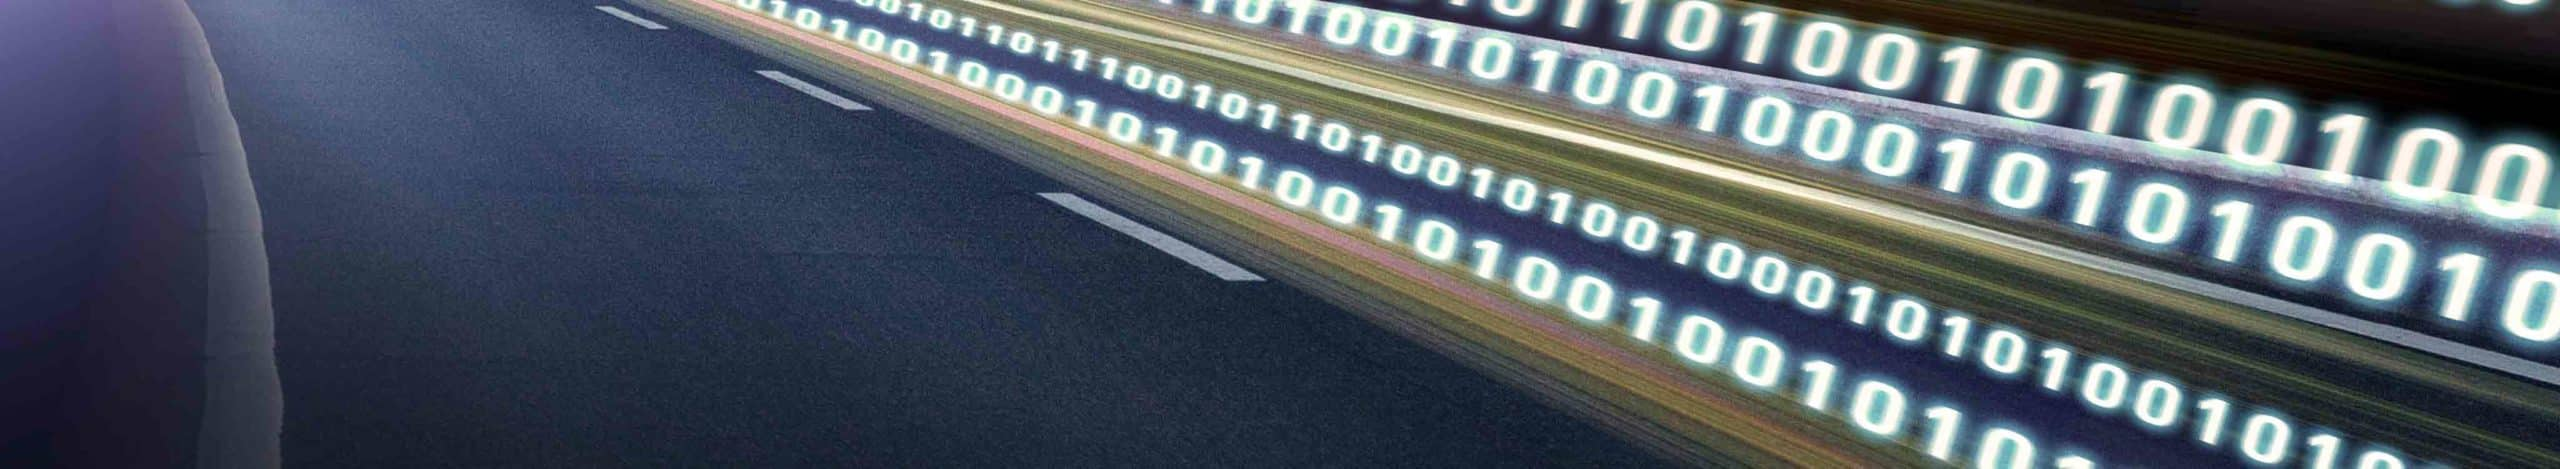 A binary code 'traveling' across at the speed of light. This highlights how data is becoming increasingly important in logistics.